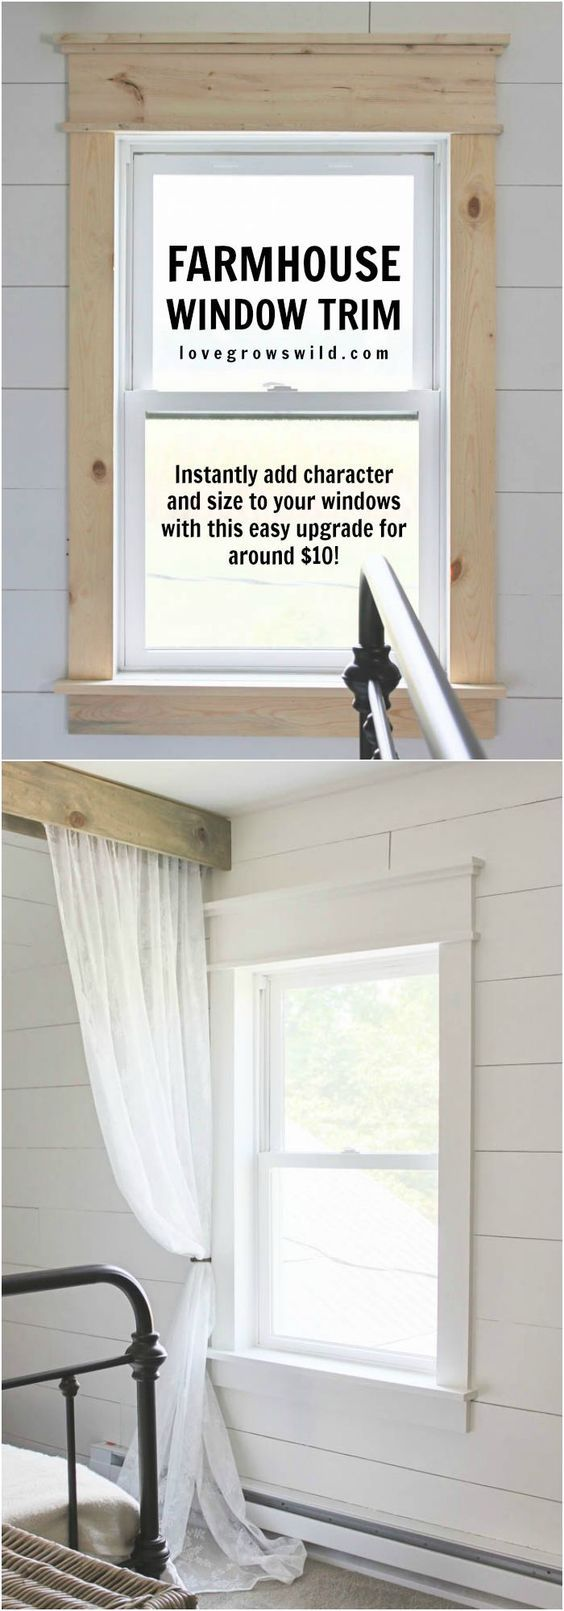 Learn how to bulk up the trim around your windows for a beautiful farmhouse look! Such an easy and inexpensive upgrade! | LoveGrowsWild.com: